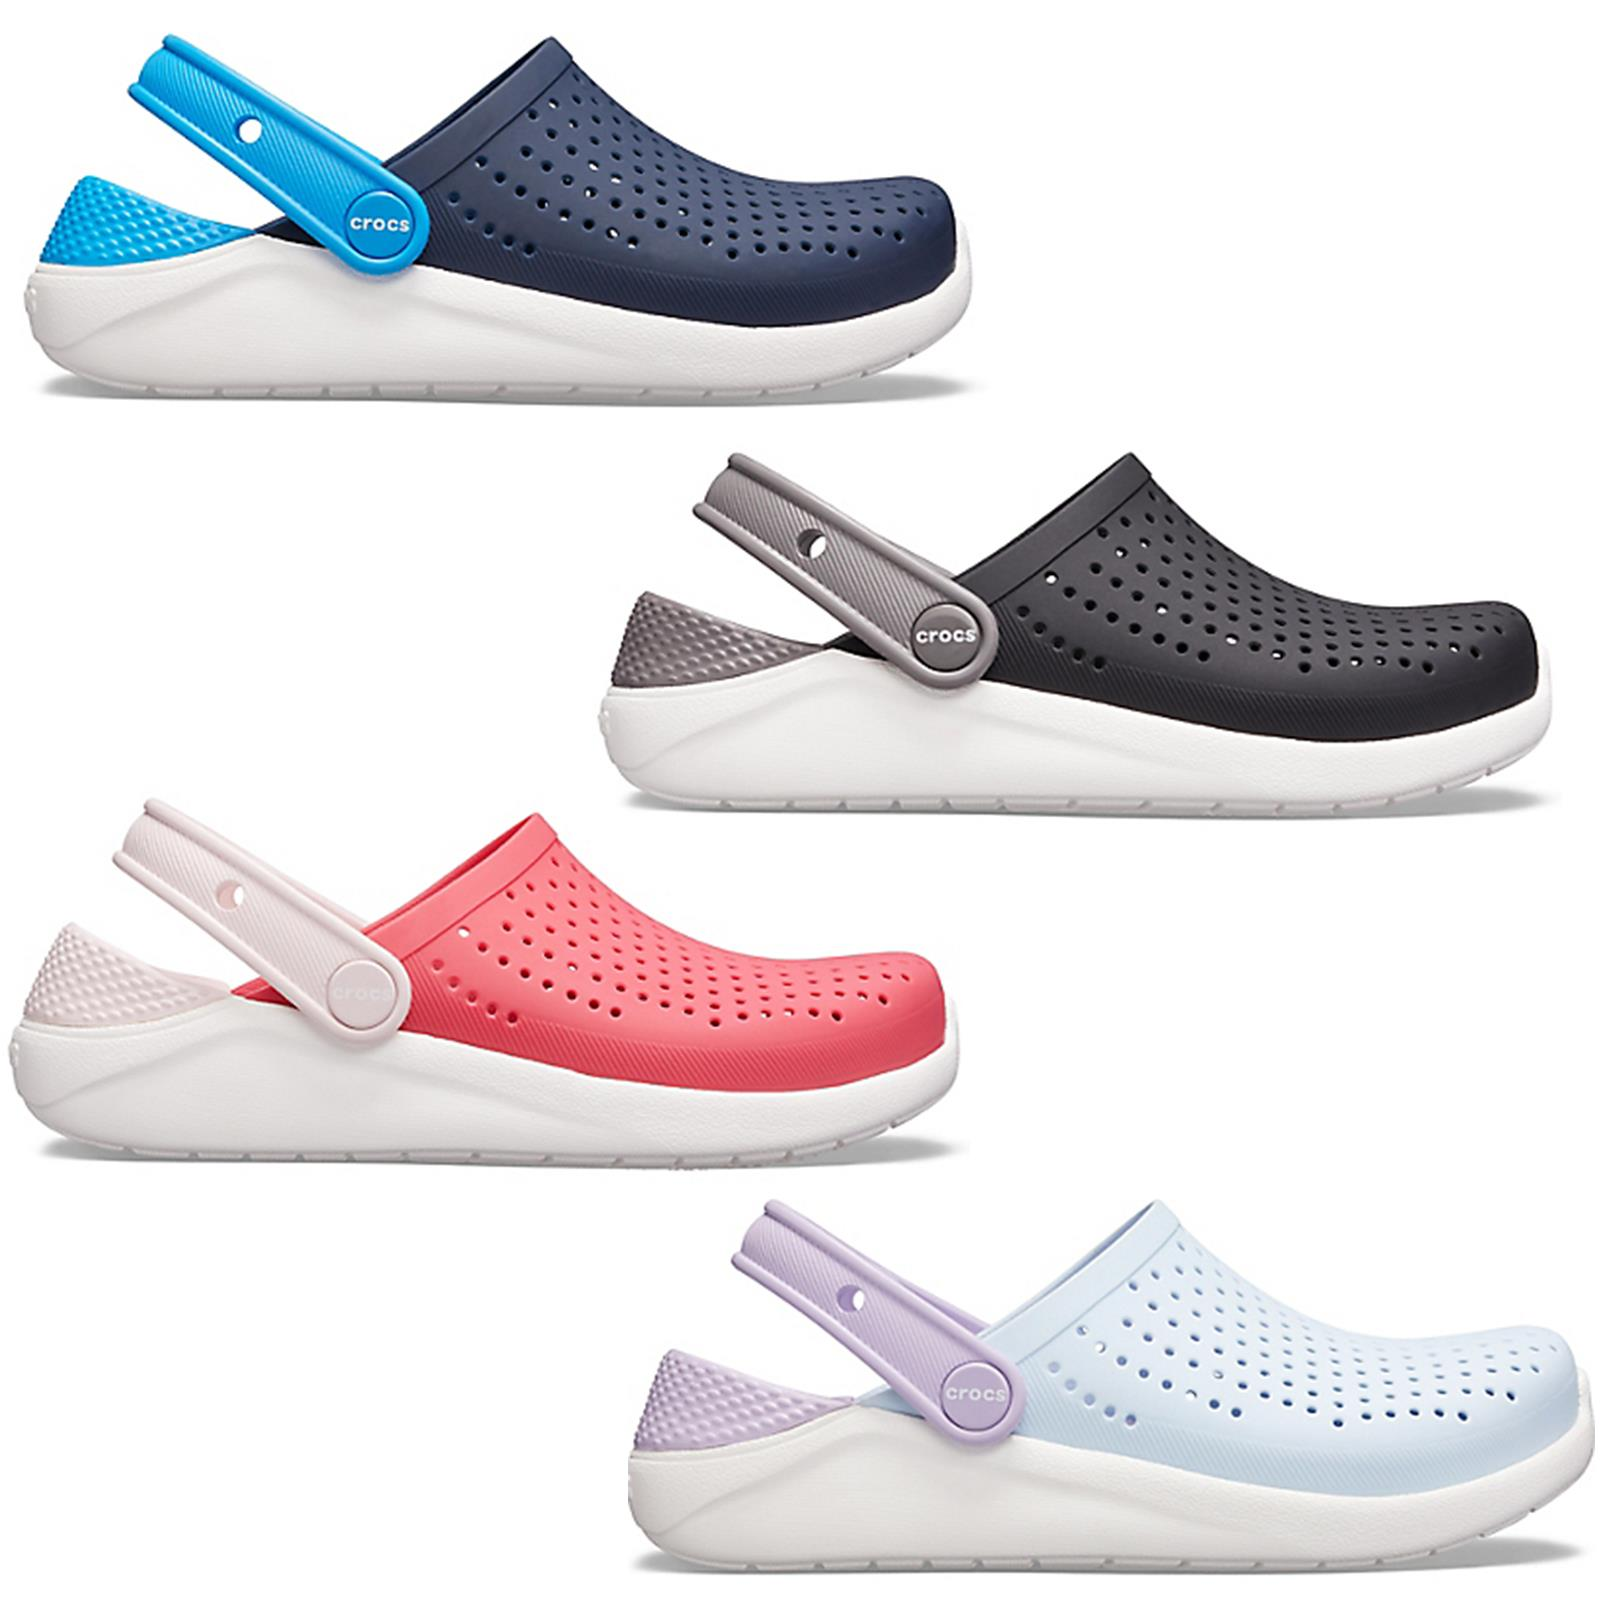 Crocs LiteRide Kids Clogs Shoes Relaxed